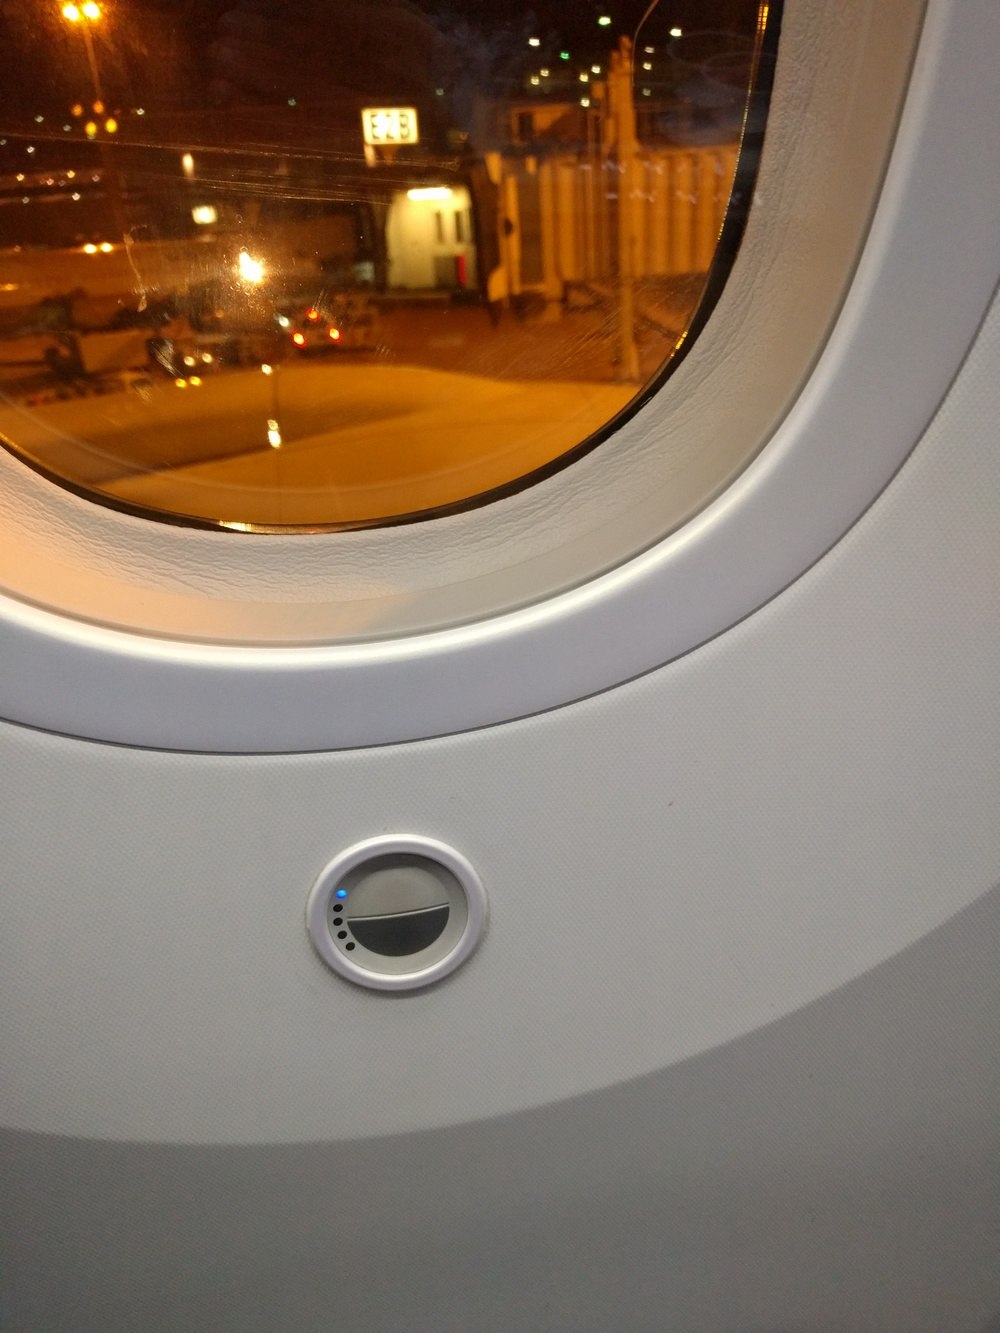 787 Window Shade Controls